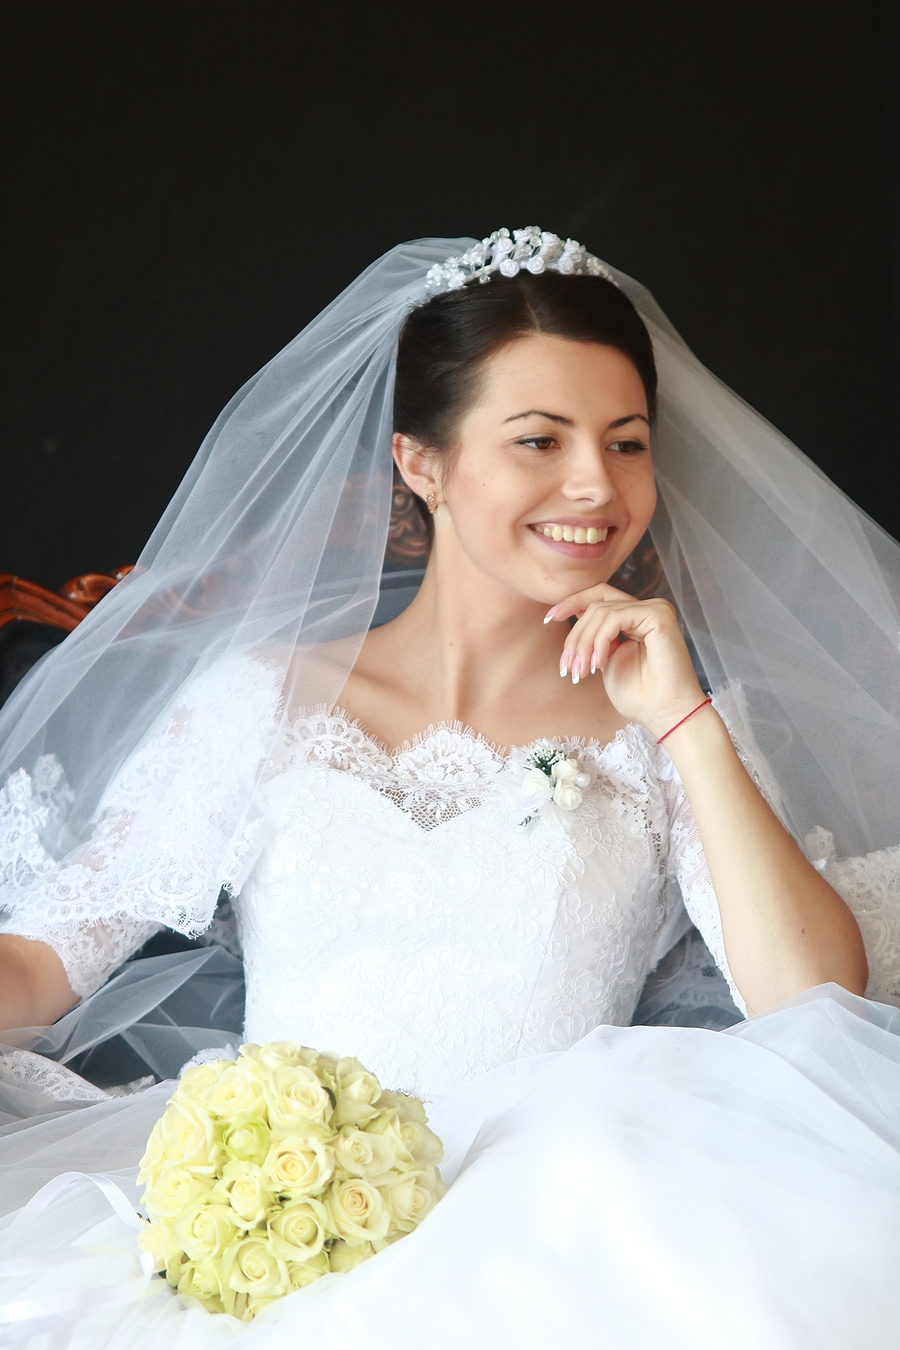 Happy bride / Photography by Vladimir / Uploaded 23rd December 2017 @ 07:49 PM